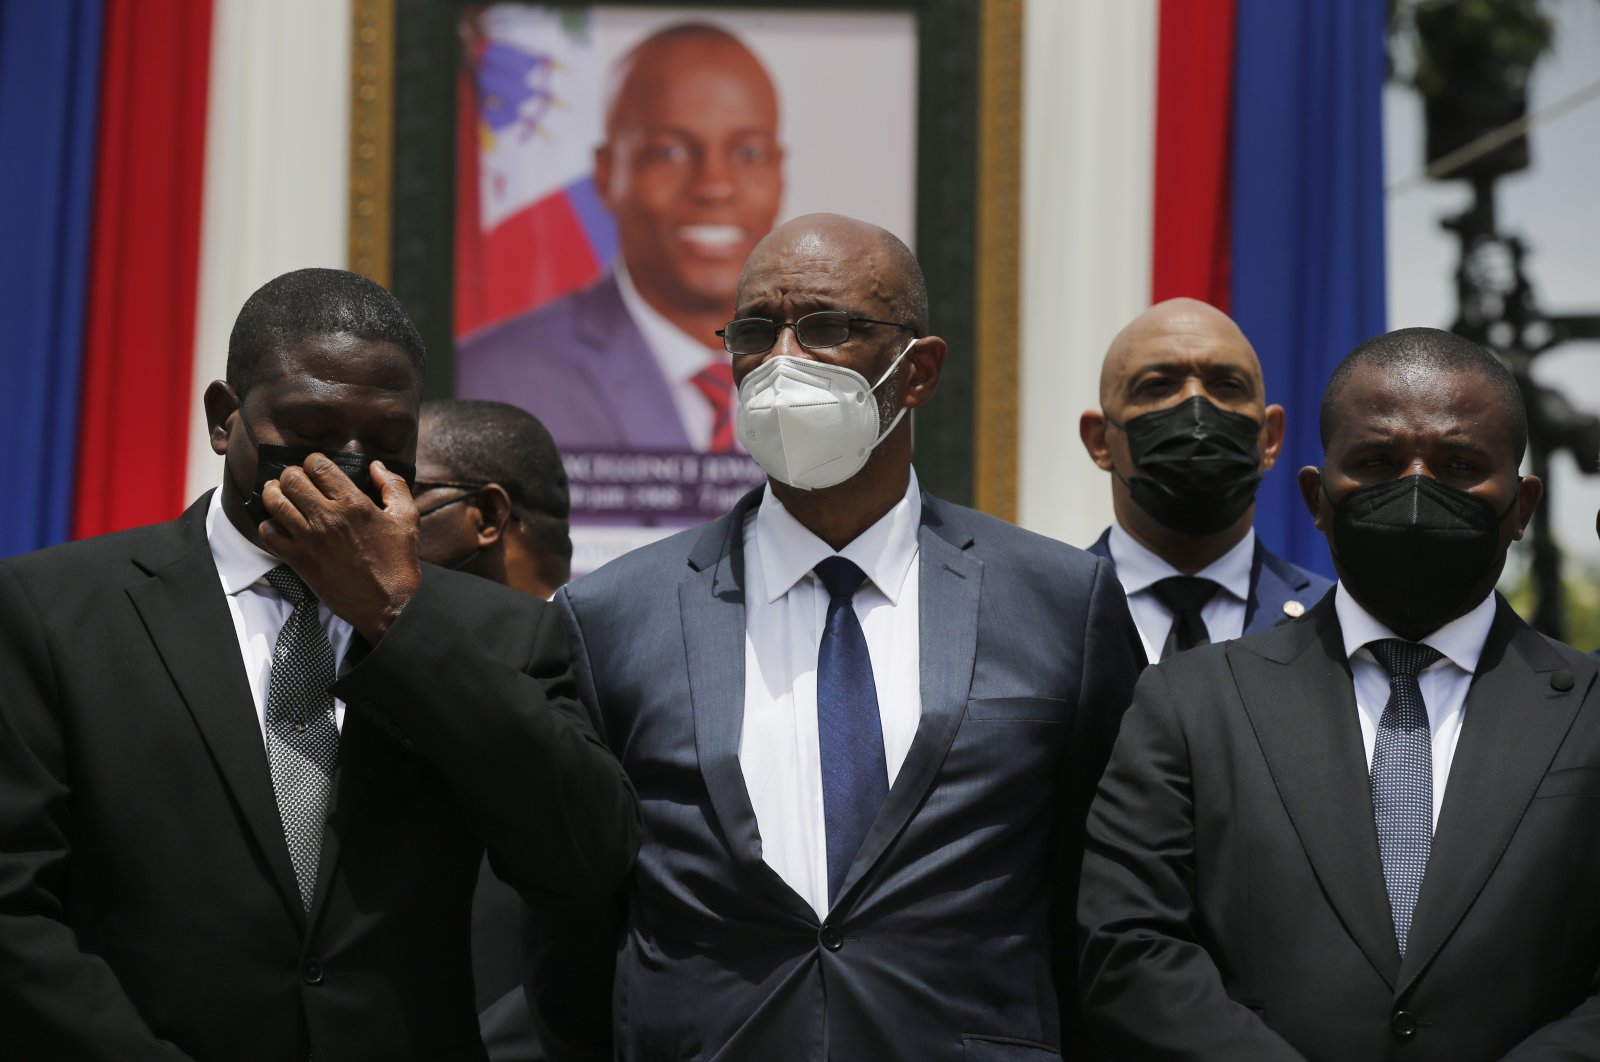 Haiti's designated Prime Minister Ariel Henry (C) and interim Prime Minister Claude Joseph (R) pose for a group photo with other authorities in front of a portrait of slain Haitian President Jovenel Moise at the National Pantheon Museum during a memorial service for Moise in Port-au-Prince, Haiti, July 20, 2021.(AP Photo)